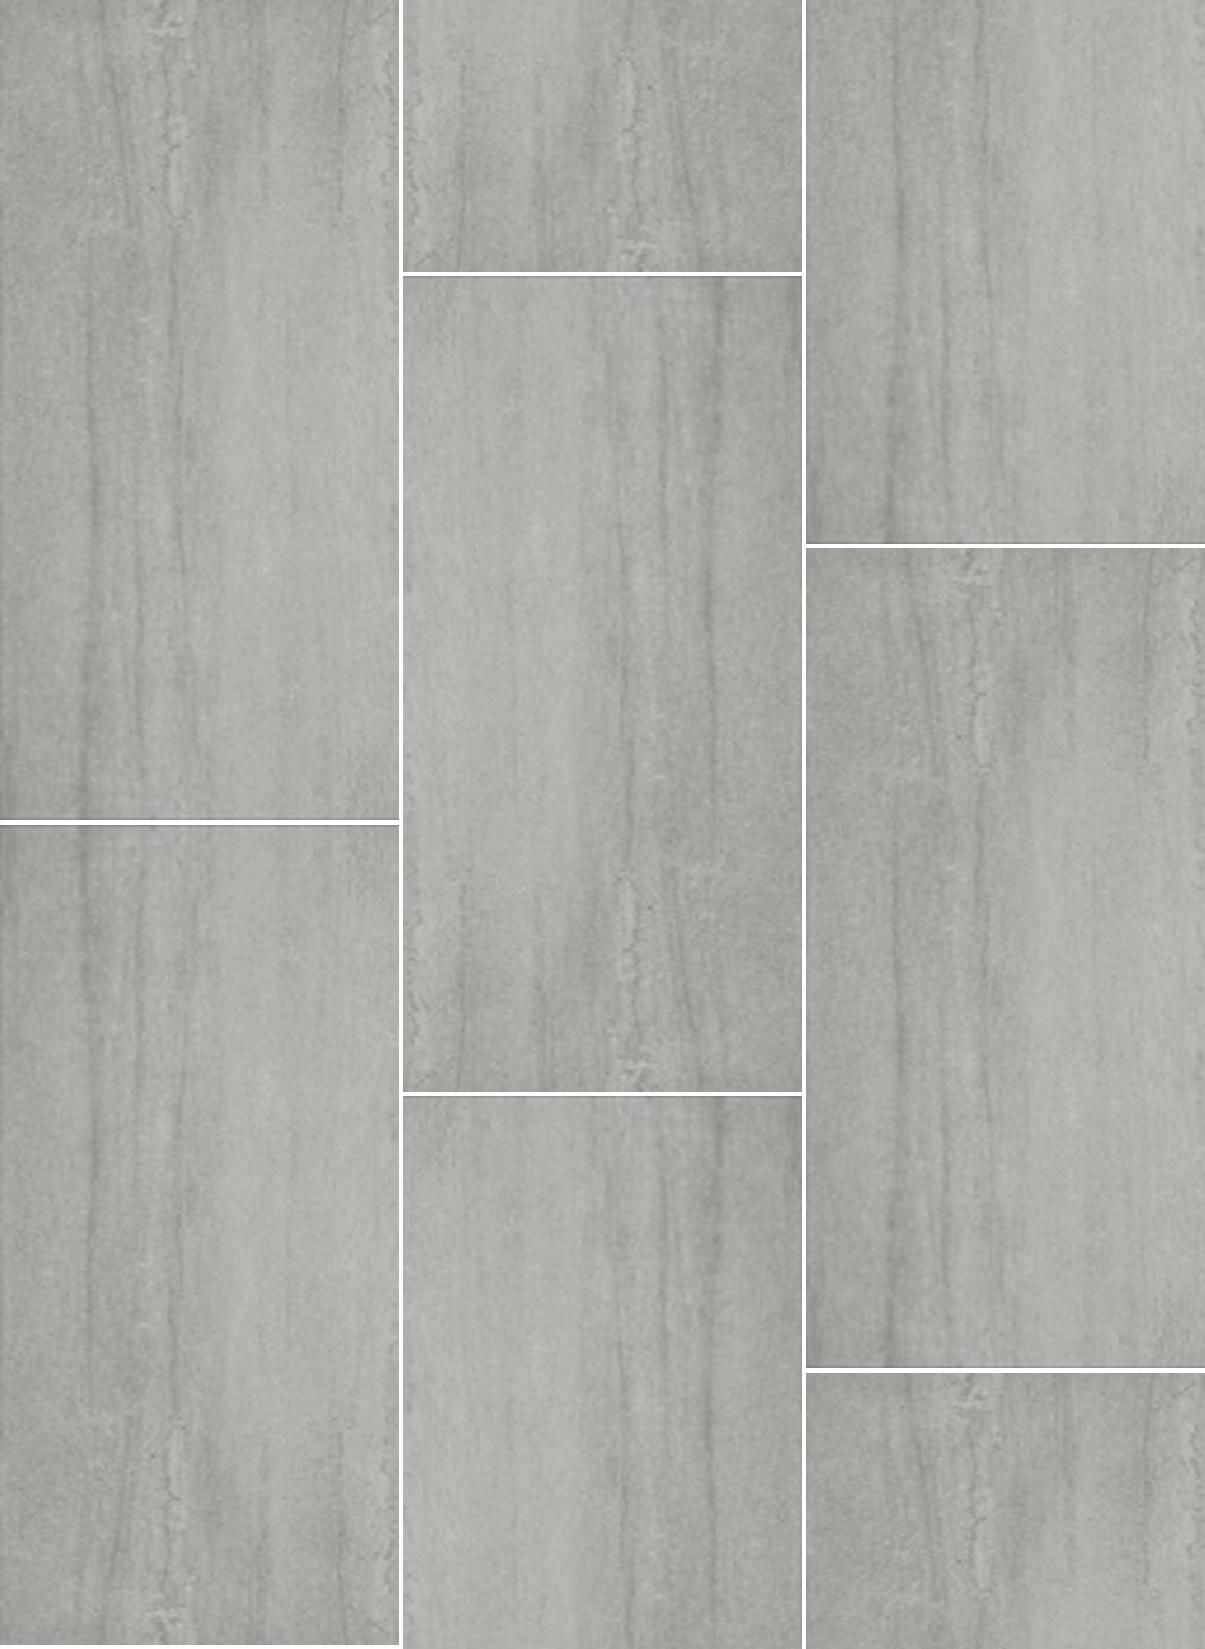 Lglimitlessdesign Contest Grey 1224 Floor Tile Nick Miller